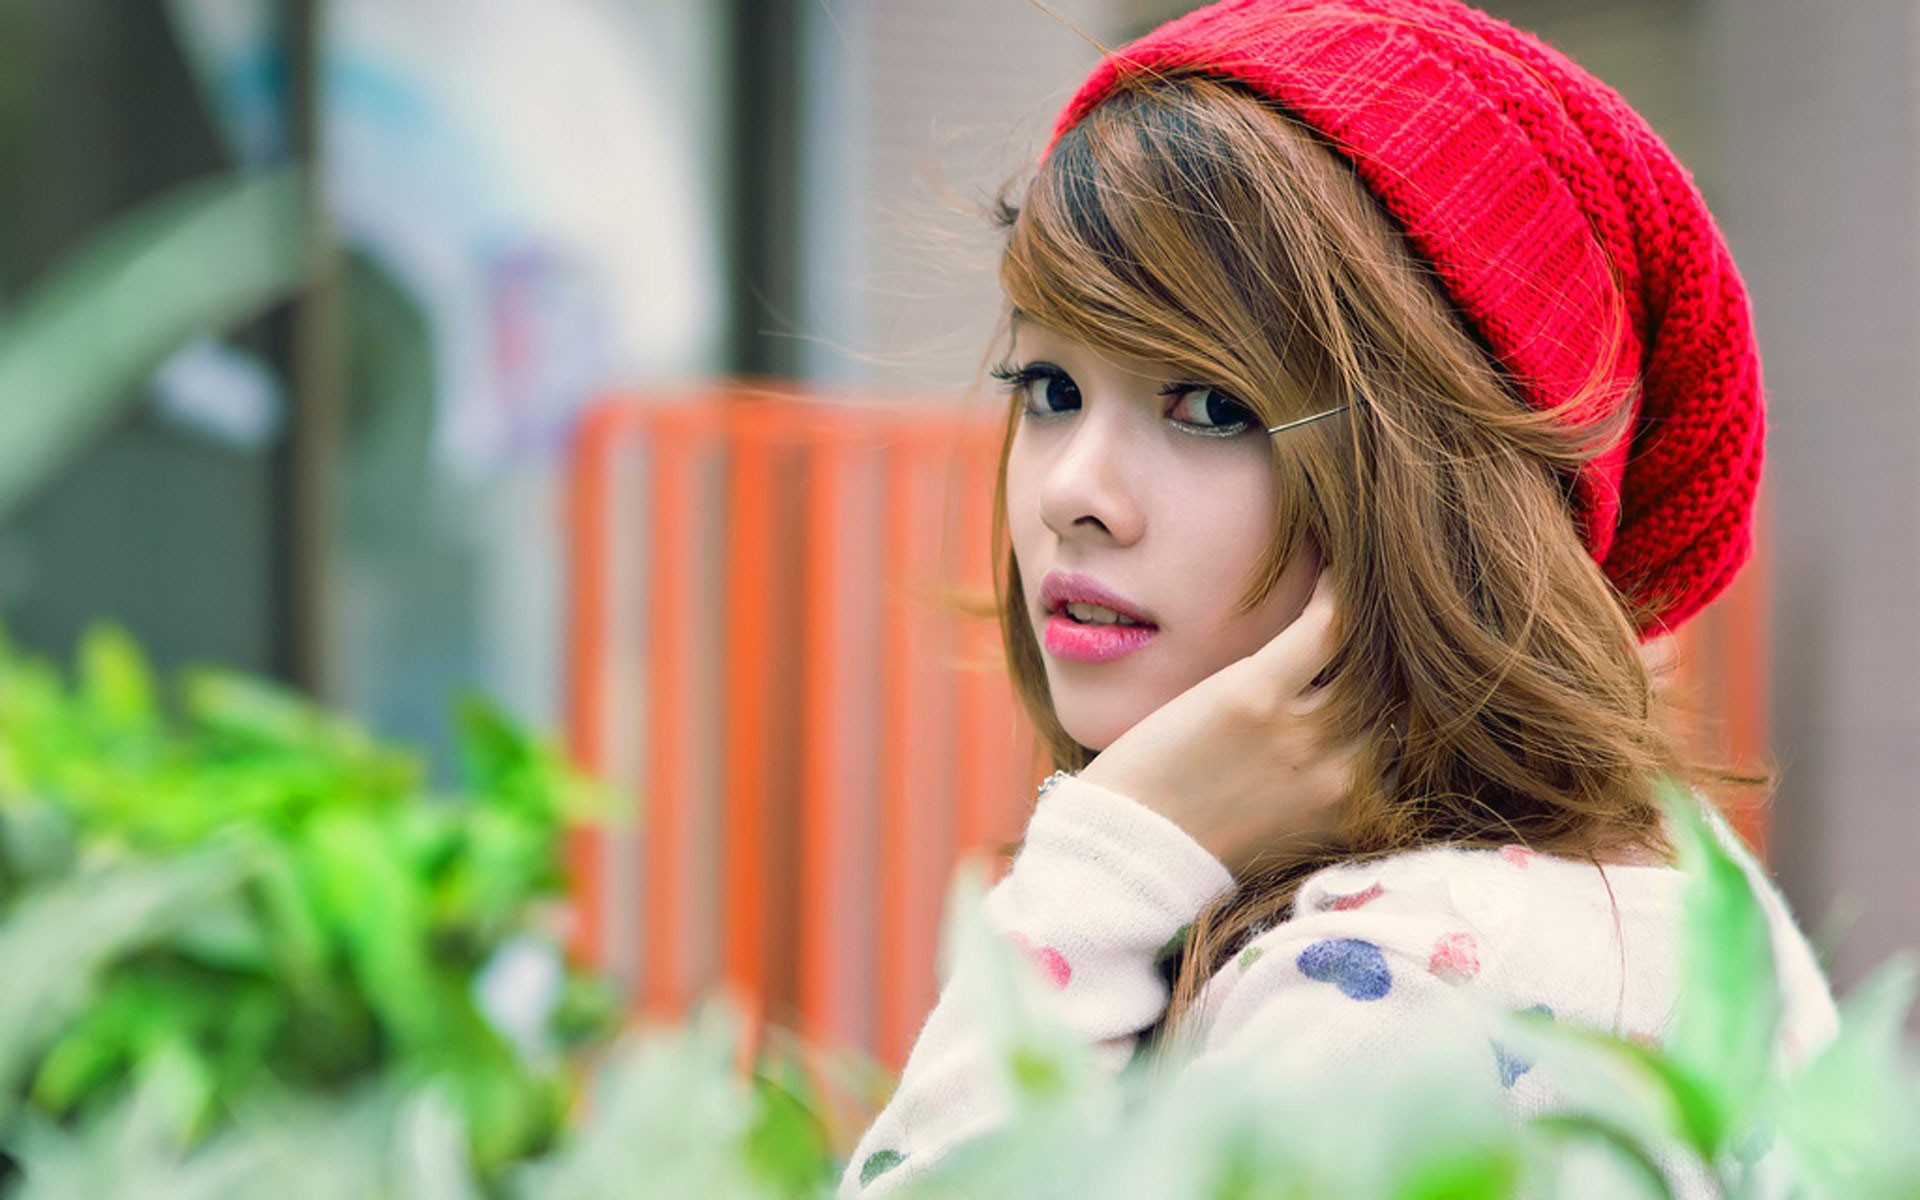 Cute Teen Girl Wallpapers 62 Images